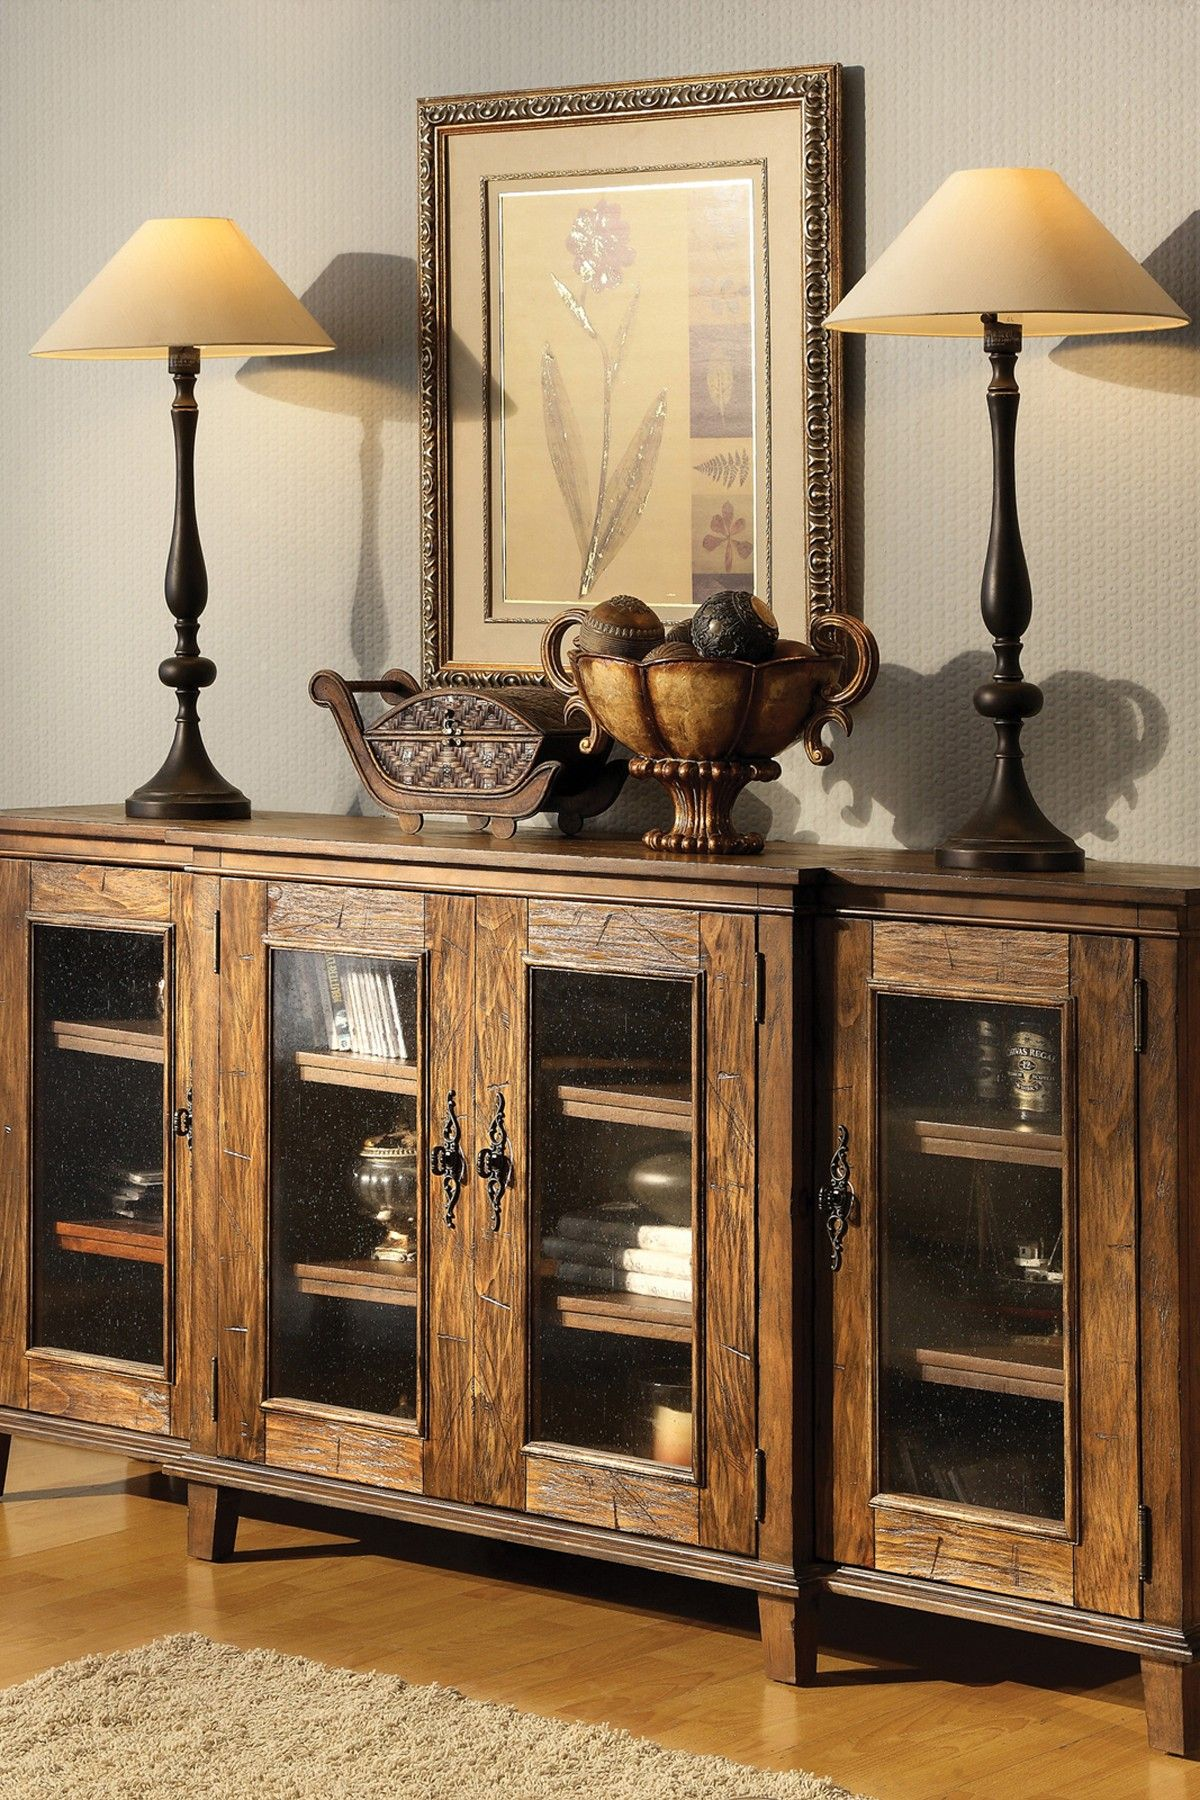 Merveilleux French Cottage Rustic Media Cabinet/Sideboard  Want!!